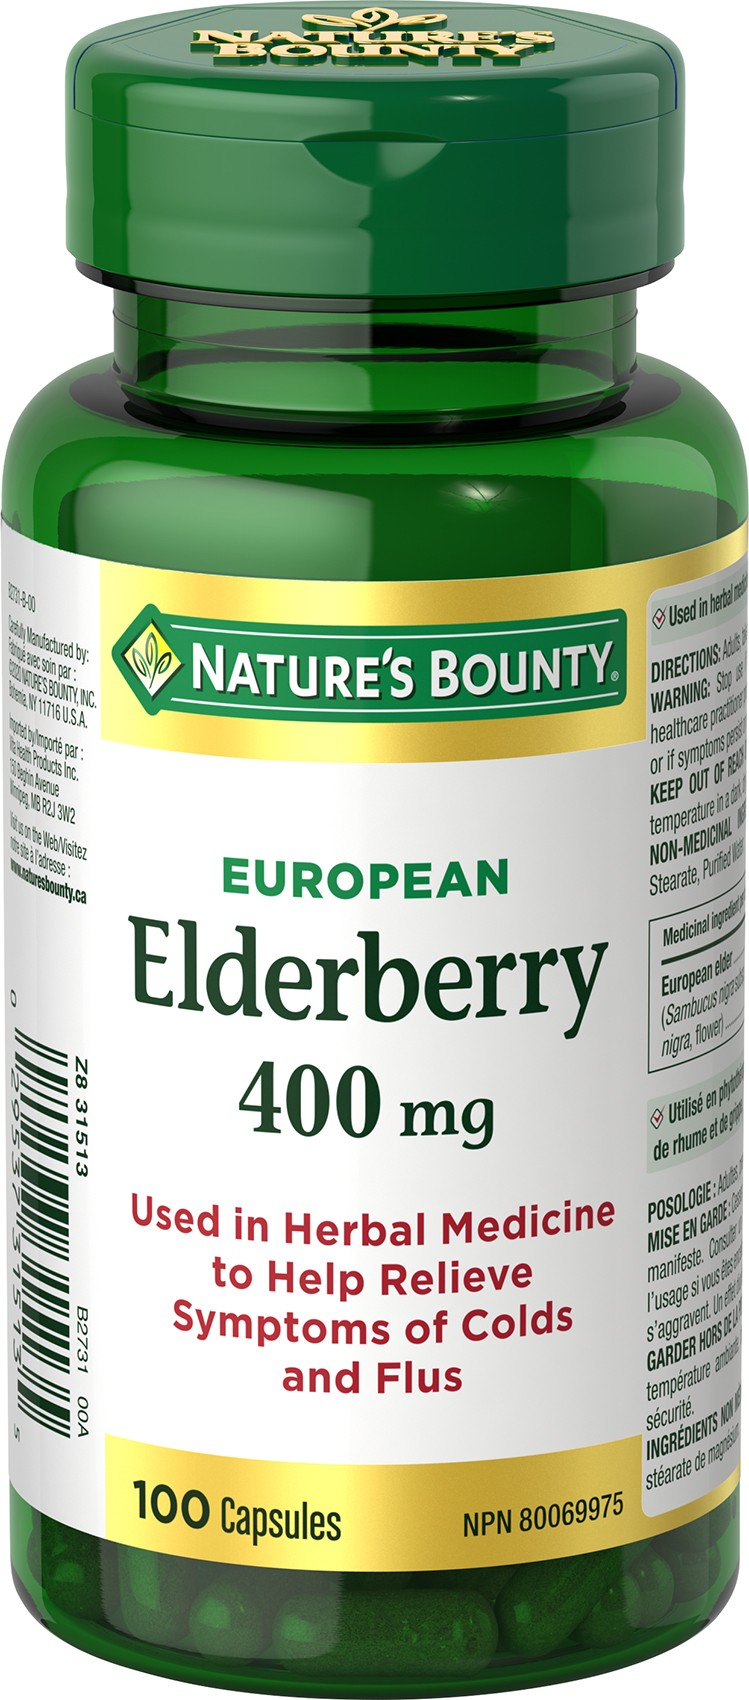 European Elderberry